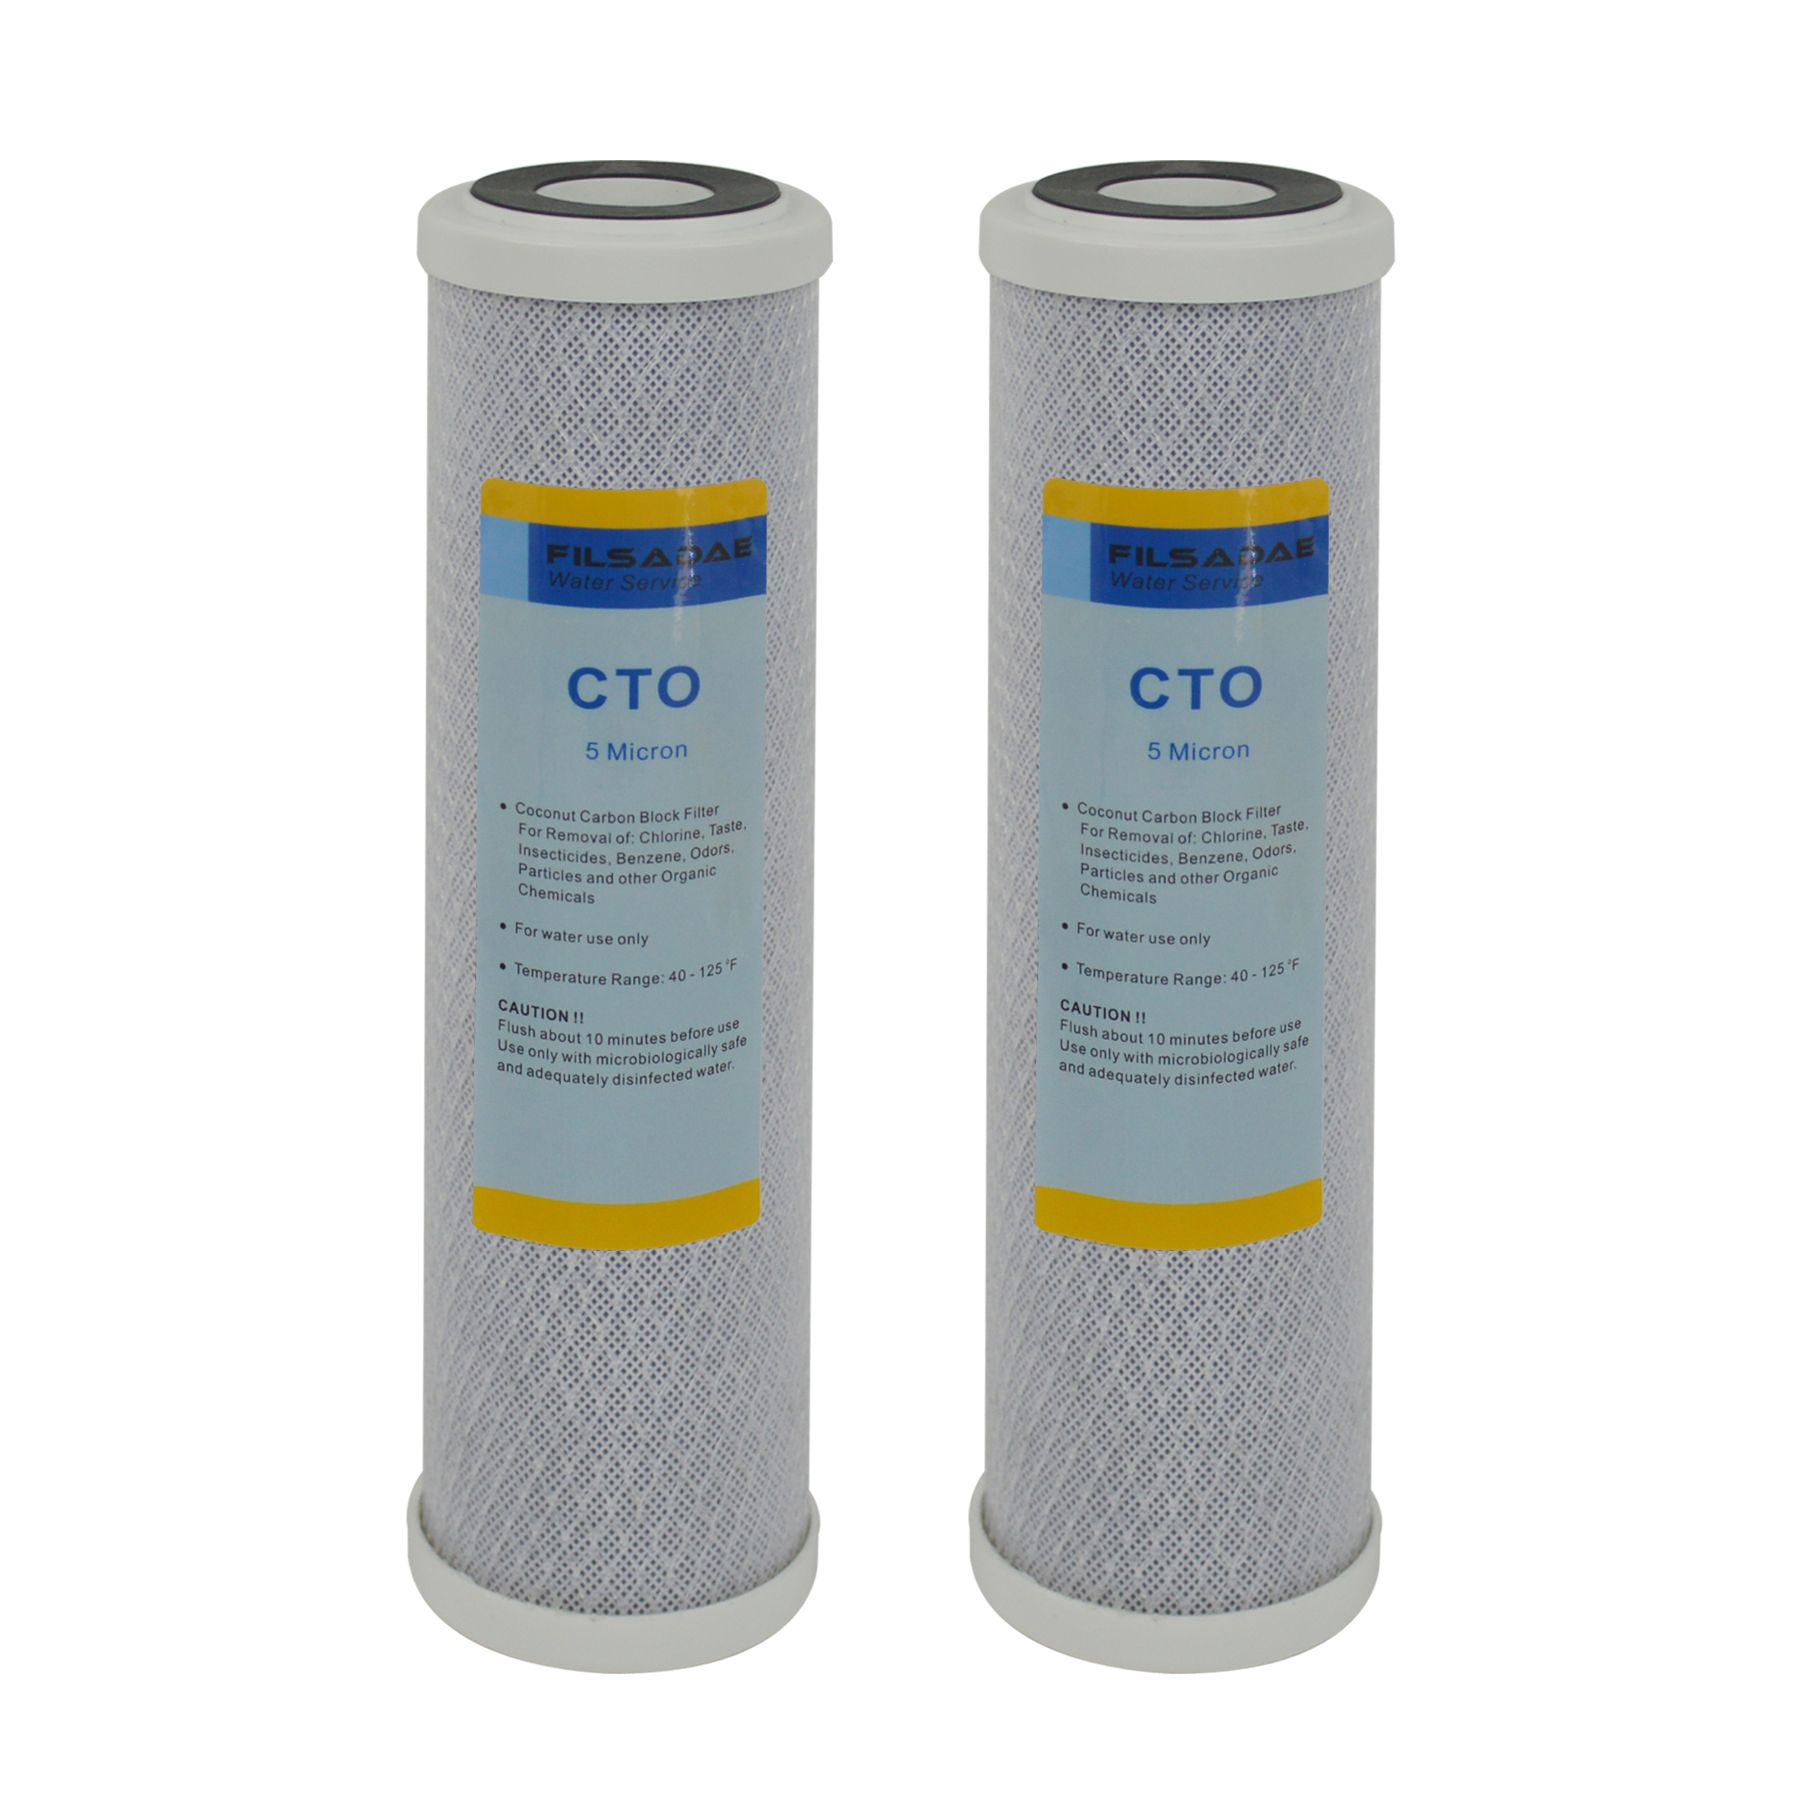 Coconut Carbon Block Water Filter Replacement For Reverse Osmosis Ro System 10 X 2 3 4 5micron Water Filter Reverse Osmosis Osmosis